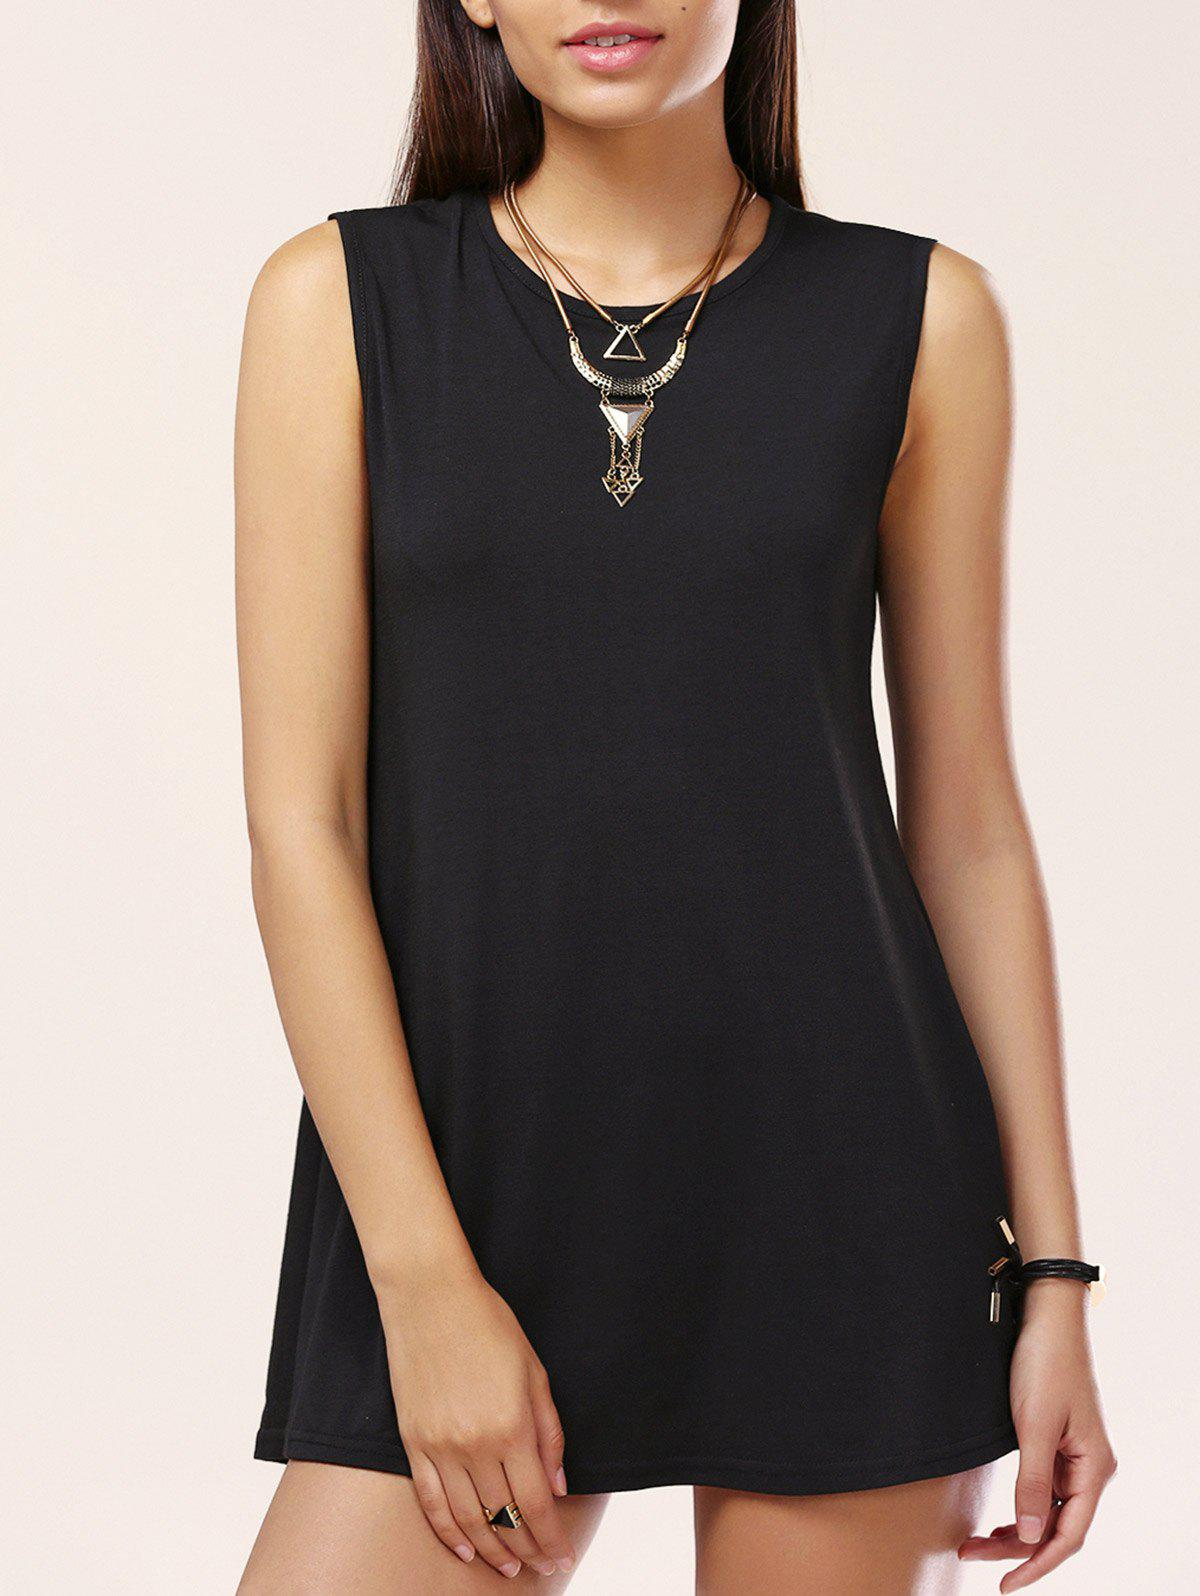 Brief Sleeveless Solid Color Women's Mini Dress - BLACK L